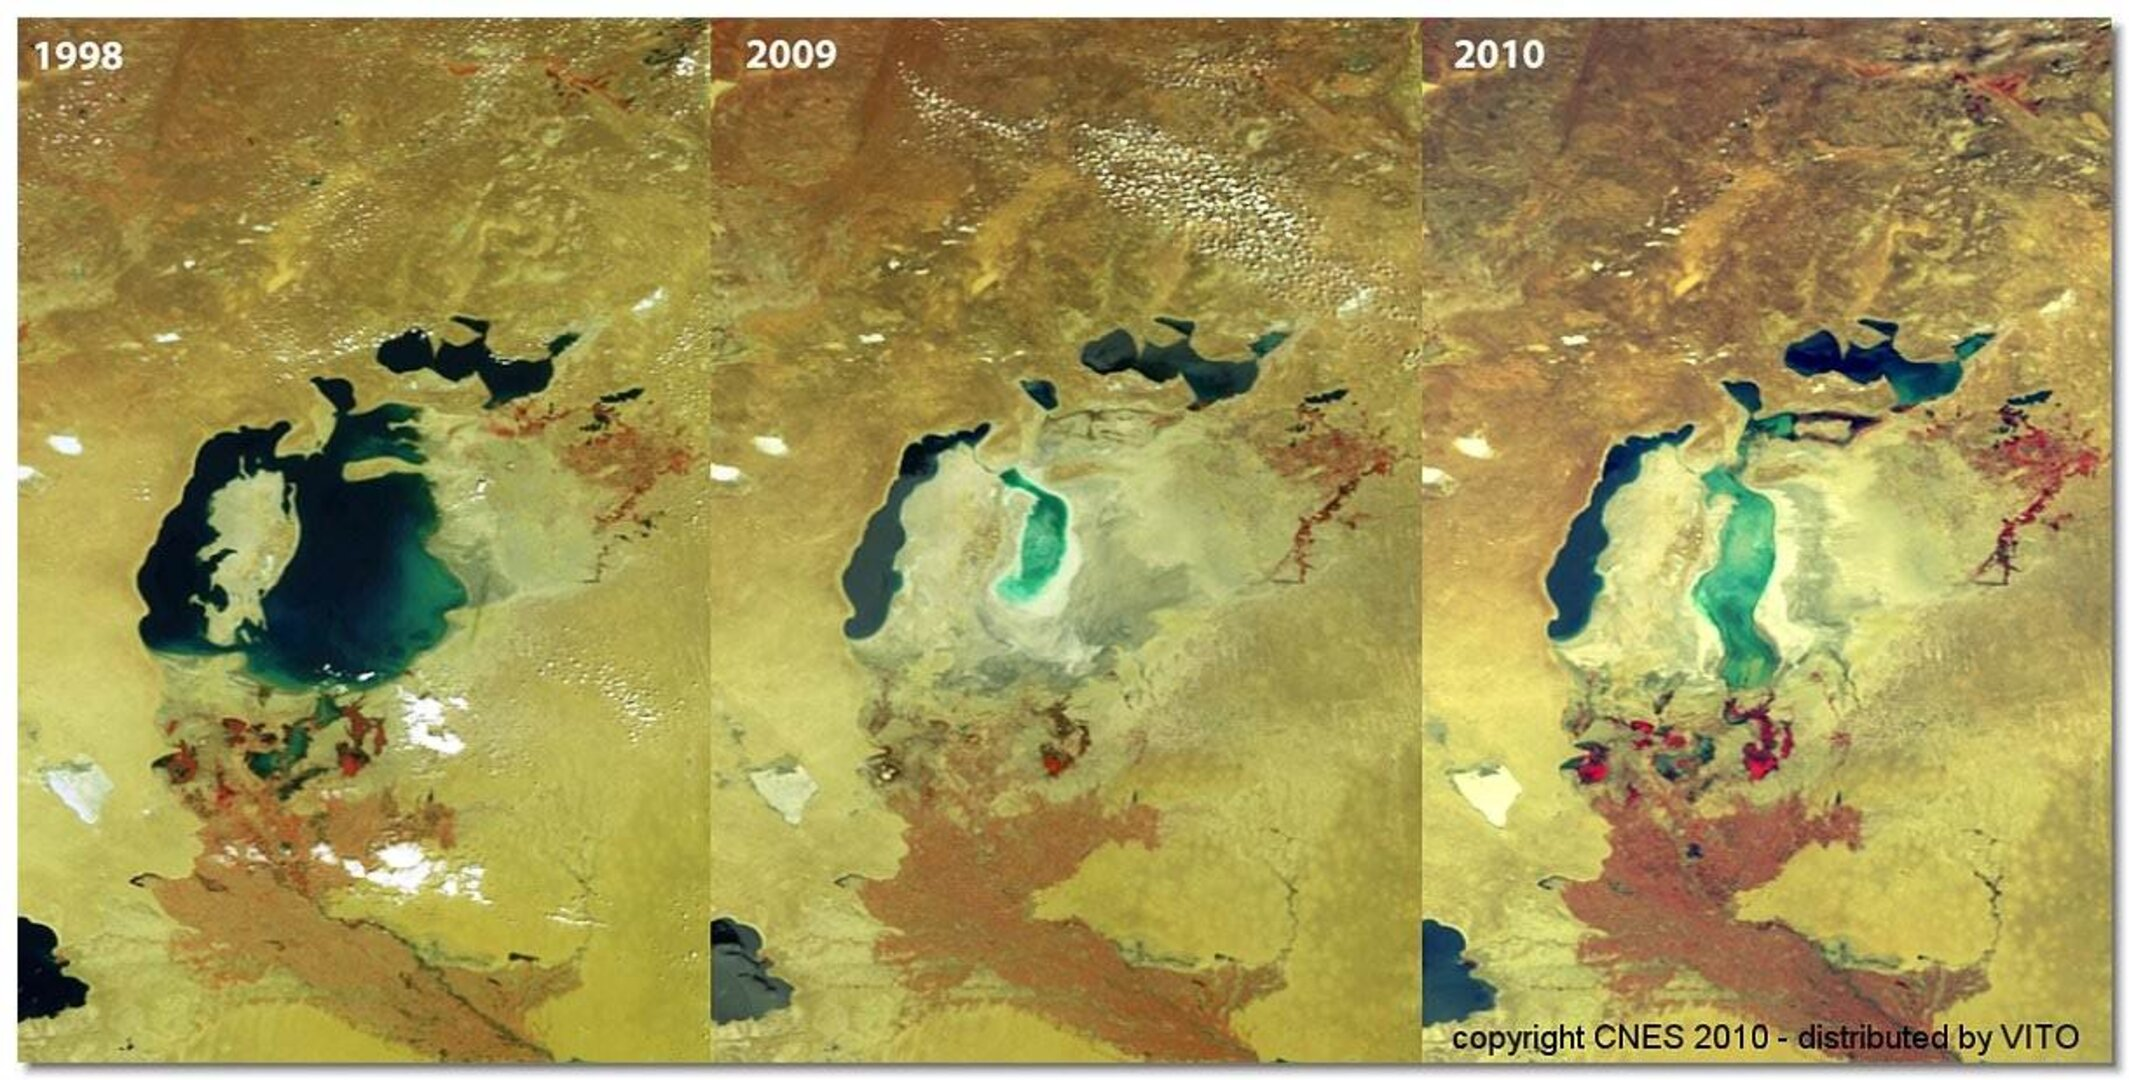 Aral sea monitored by Vegetation